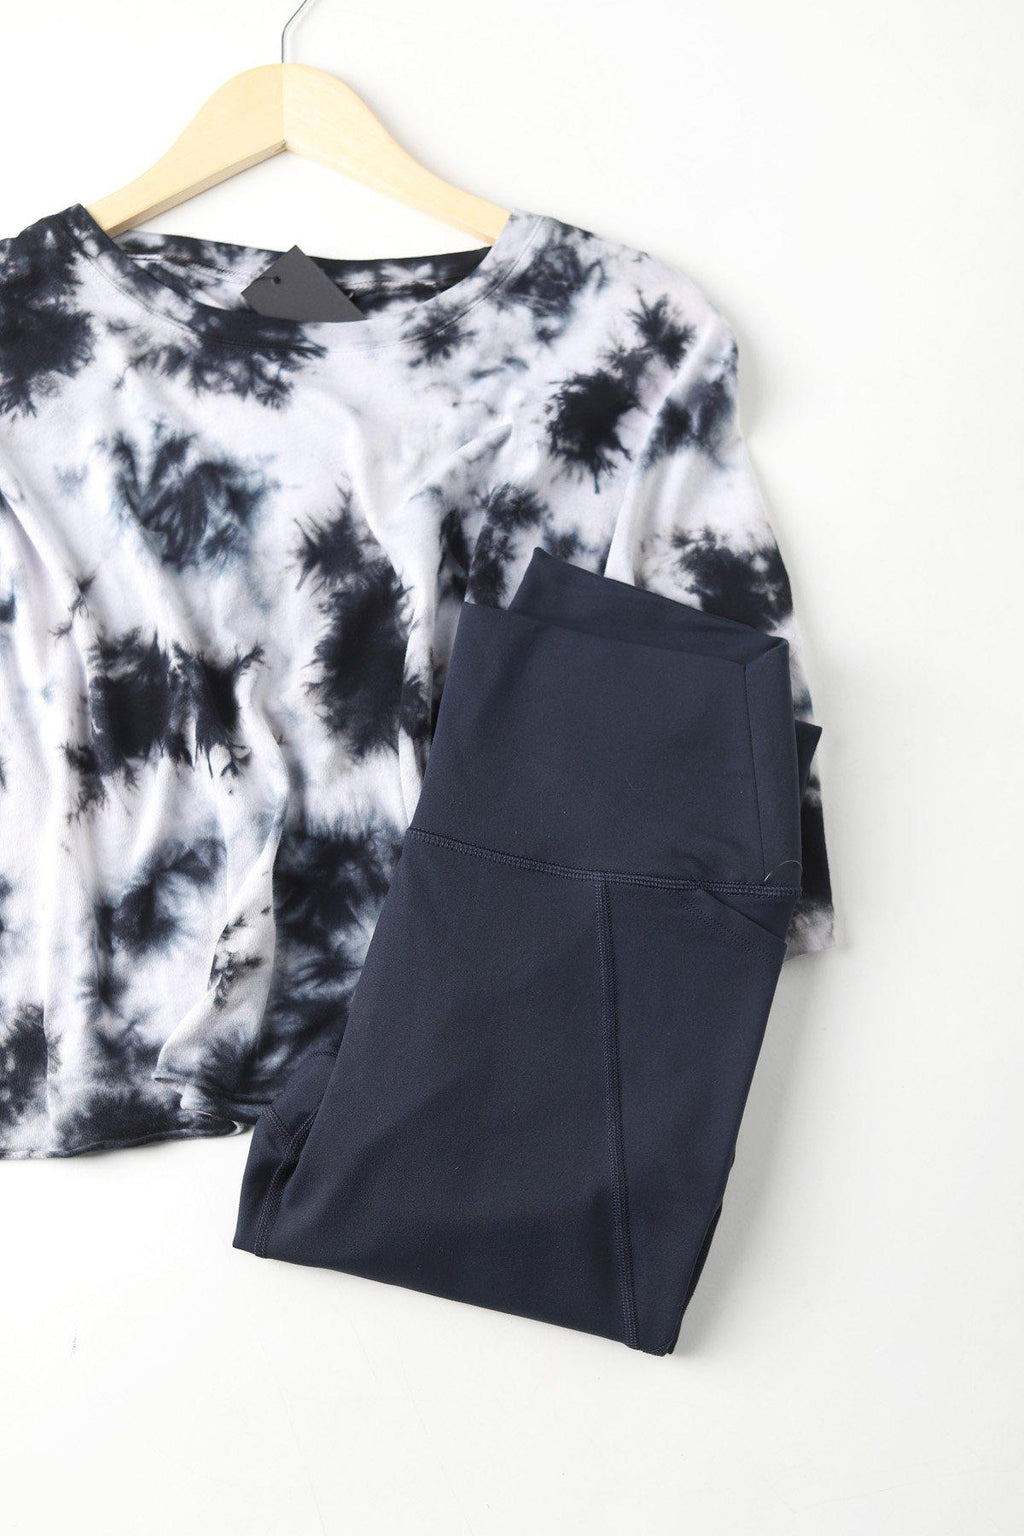 Tie-Dye Navy Crop Top